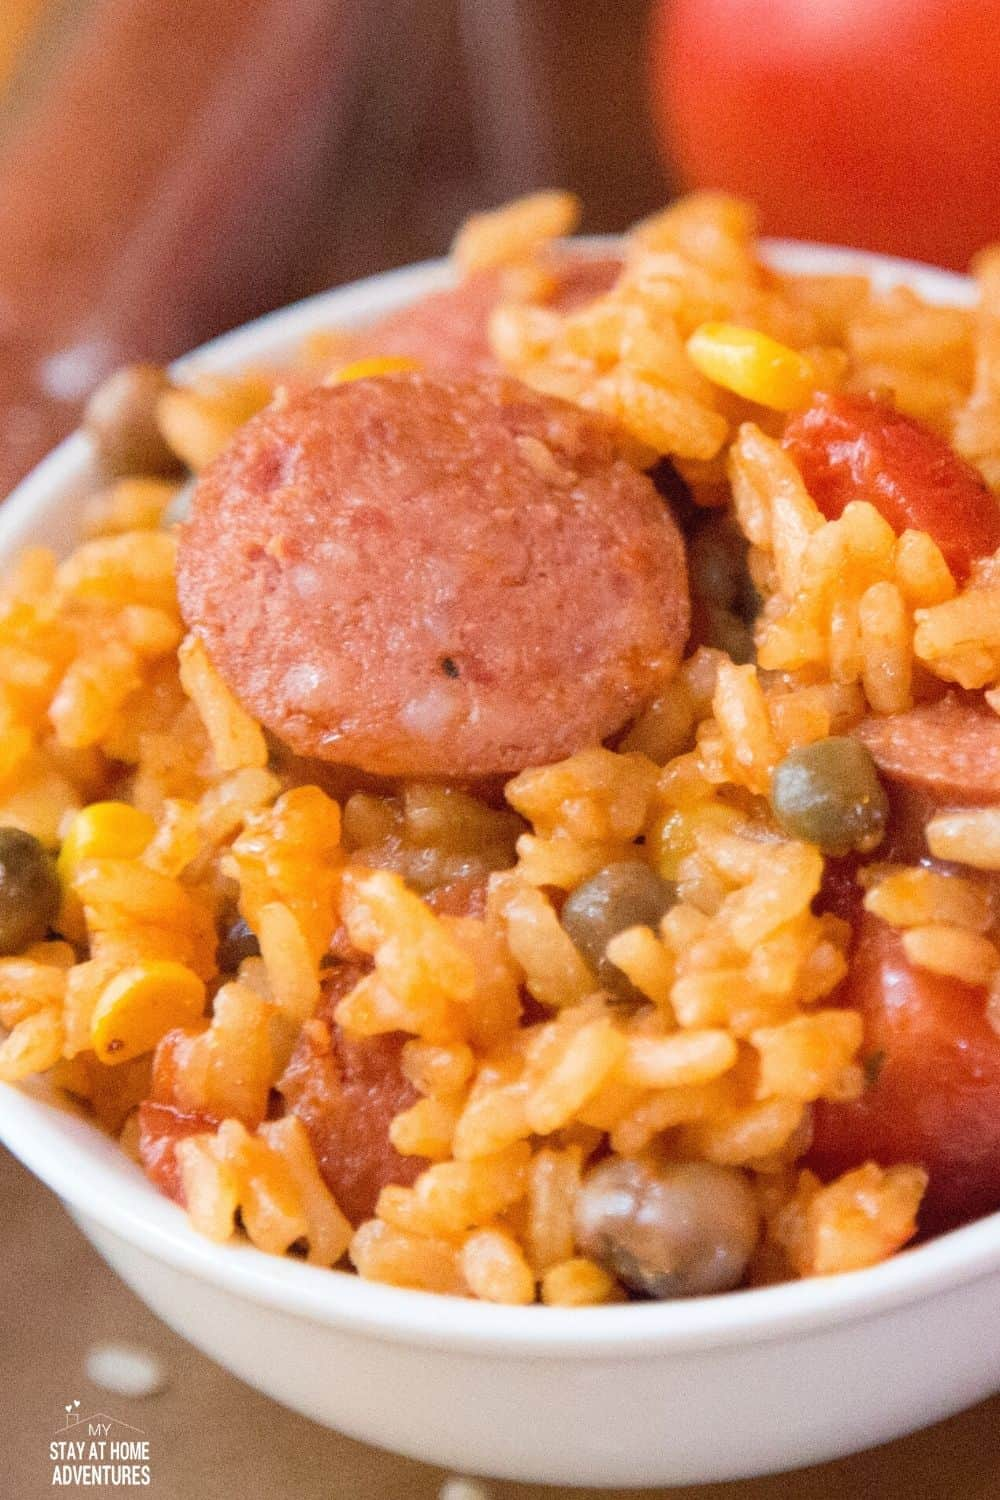 Learn how to make Sausage with Puerto Rican rice with Pigeon peas using an Instant Pot or electric pressure cooker. #puertoricanfood #seasonedrice #instantpotrecipe via @mystayathome